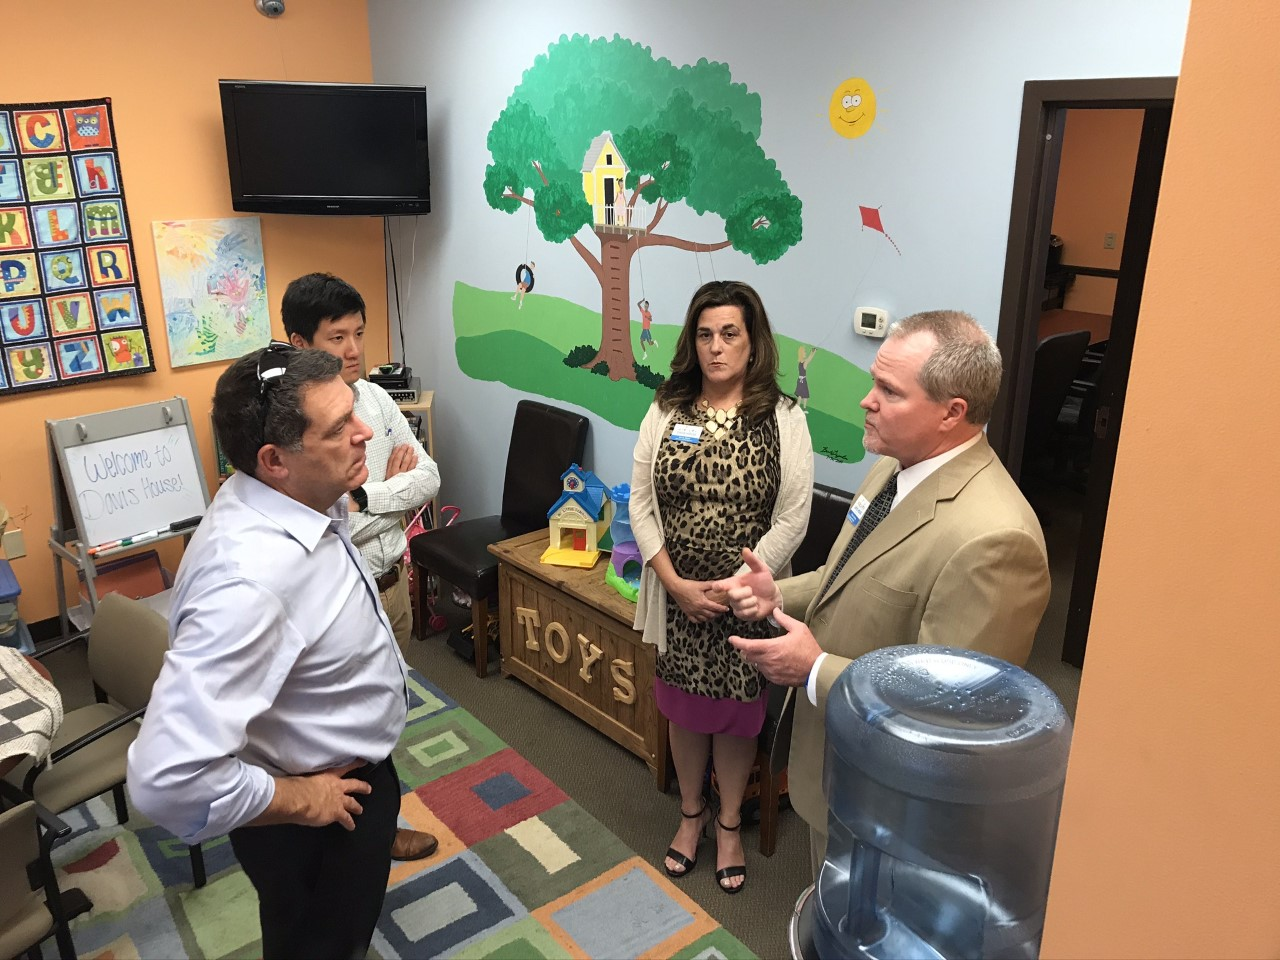 U.S. Rep. Mark Green gets inside look at child advocacy center Davis House during tour